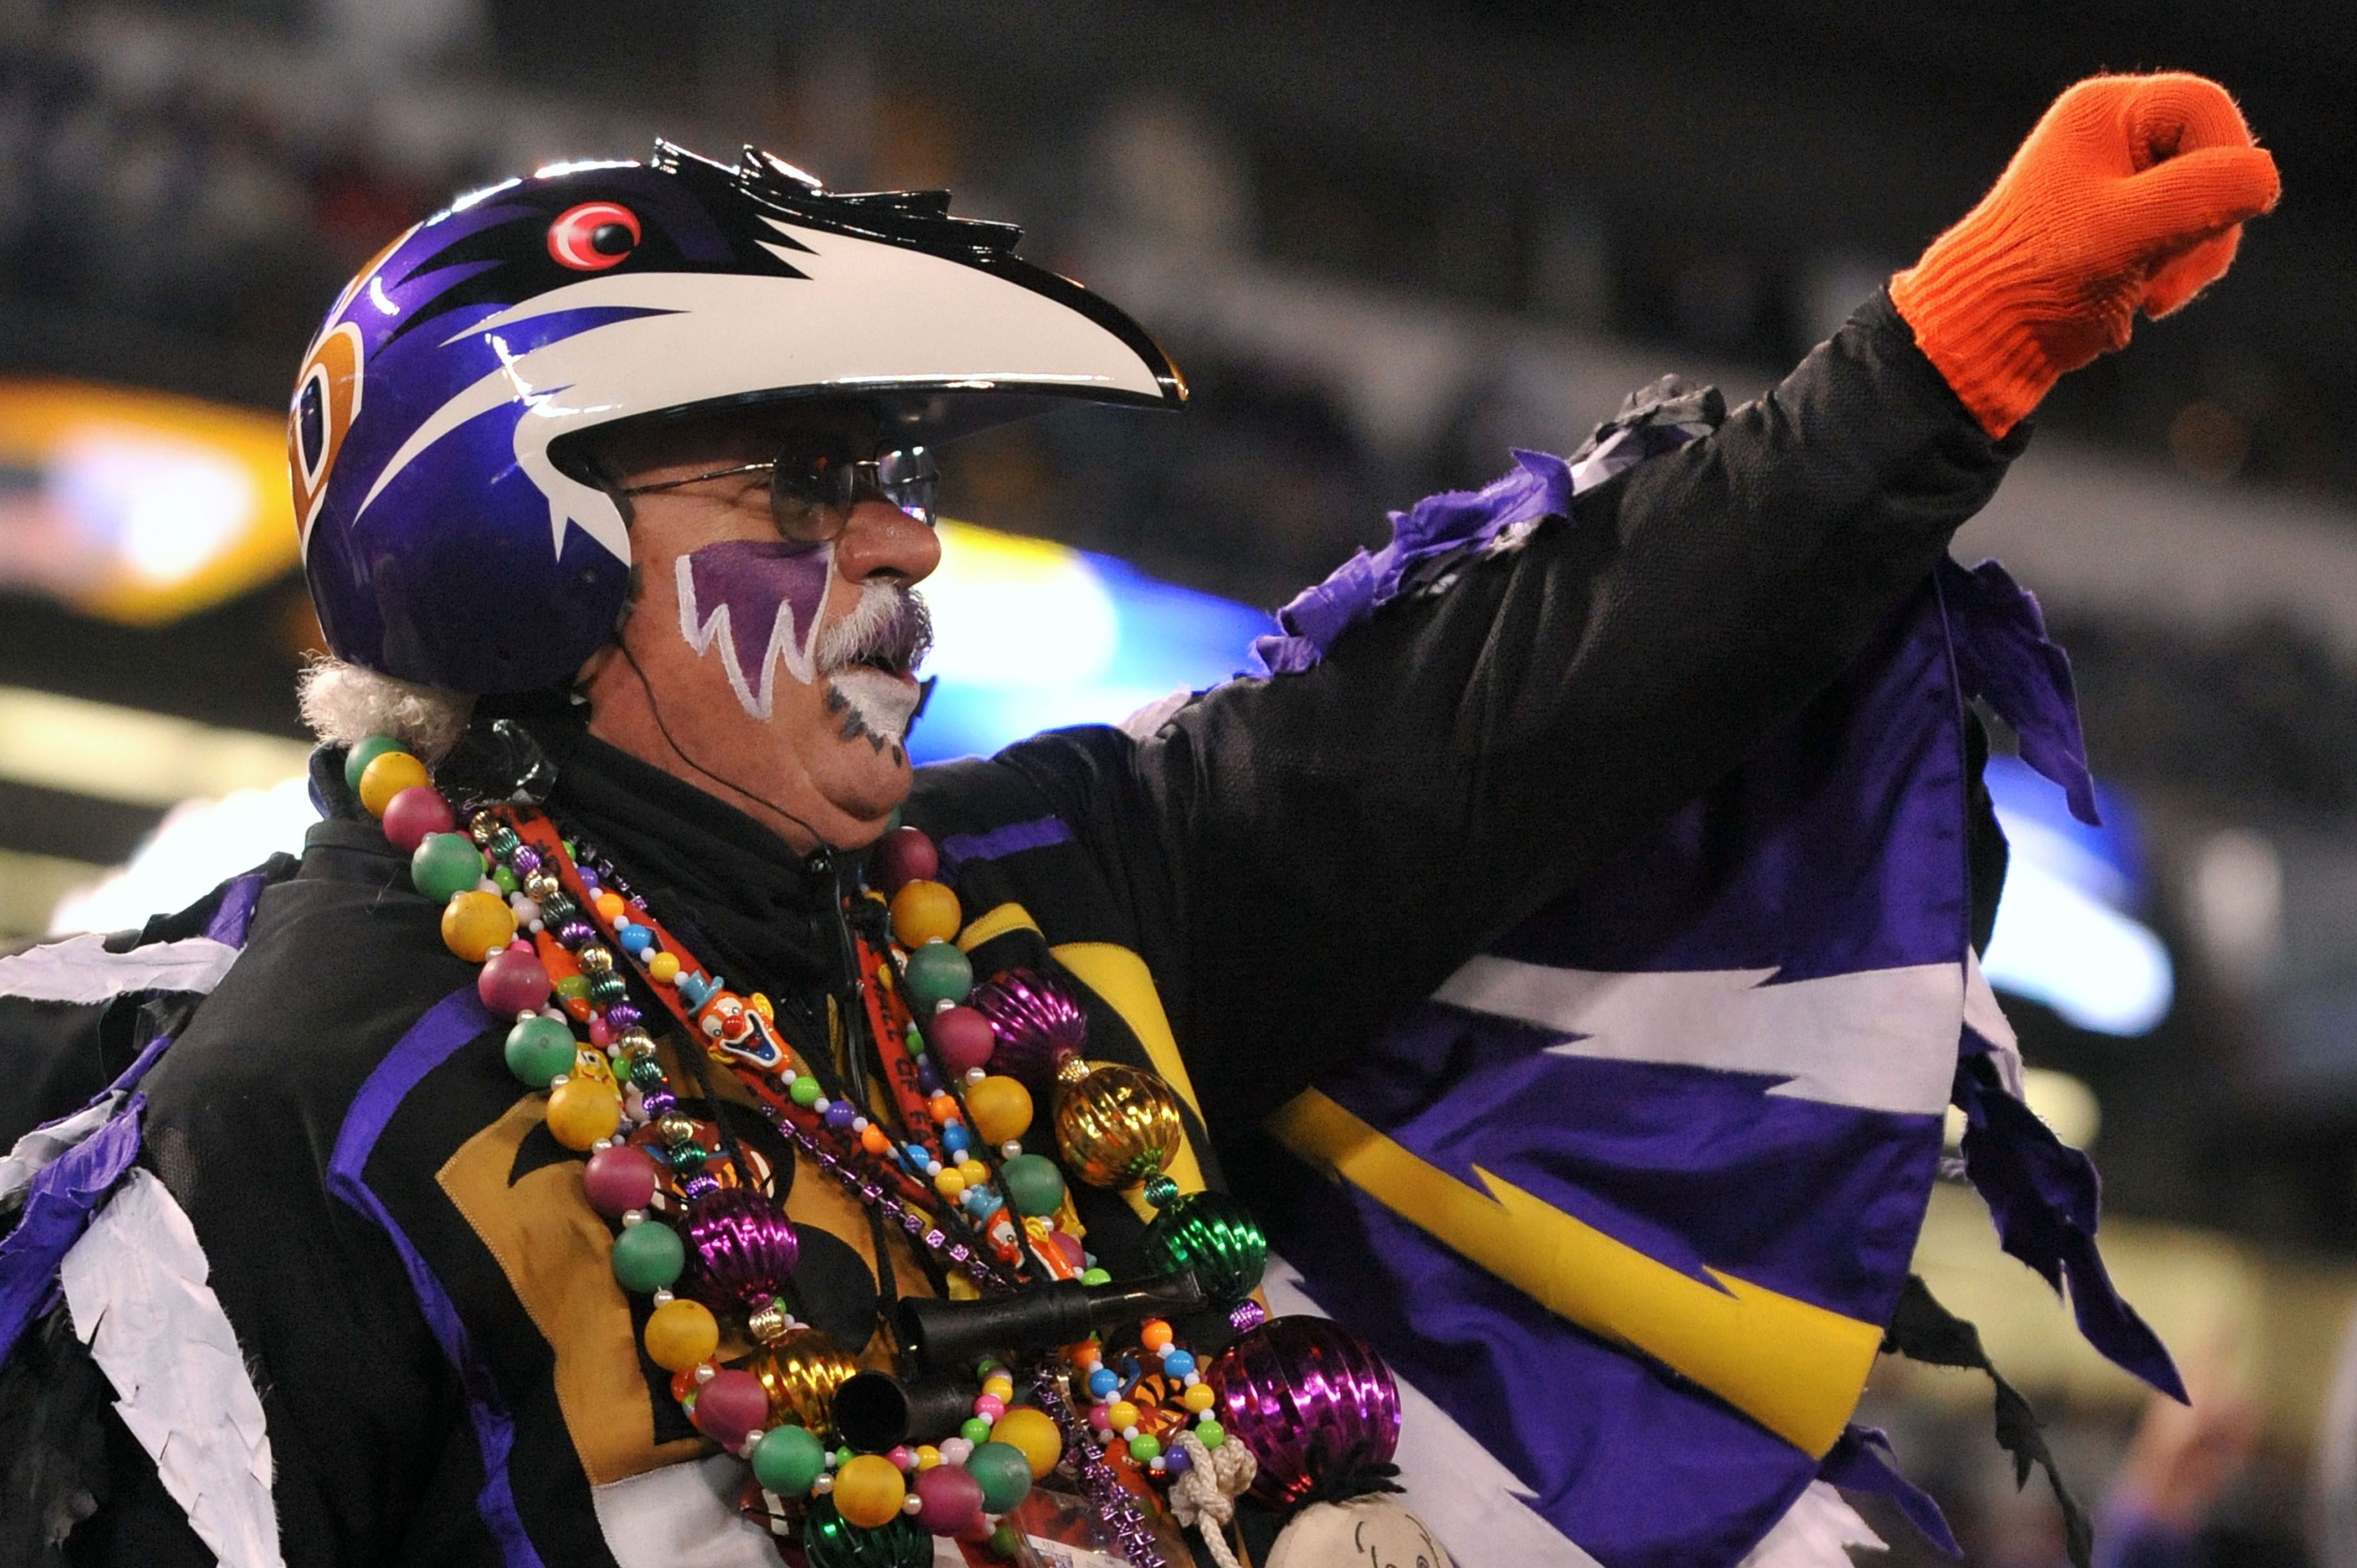 BALTIMORE, MD - DECEMBER 05:  A fan of the Baltimore Ravens cheers during the game against the Pittsburgh Steelers at M&T Bank Stadium on December 5, 2010 in Baltimore, Maryland. Pittsburgh won 13-10. (Photo by Larry French/Getty Images)